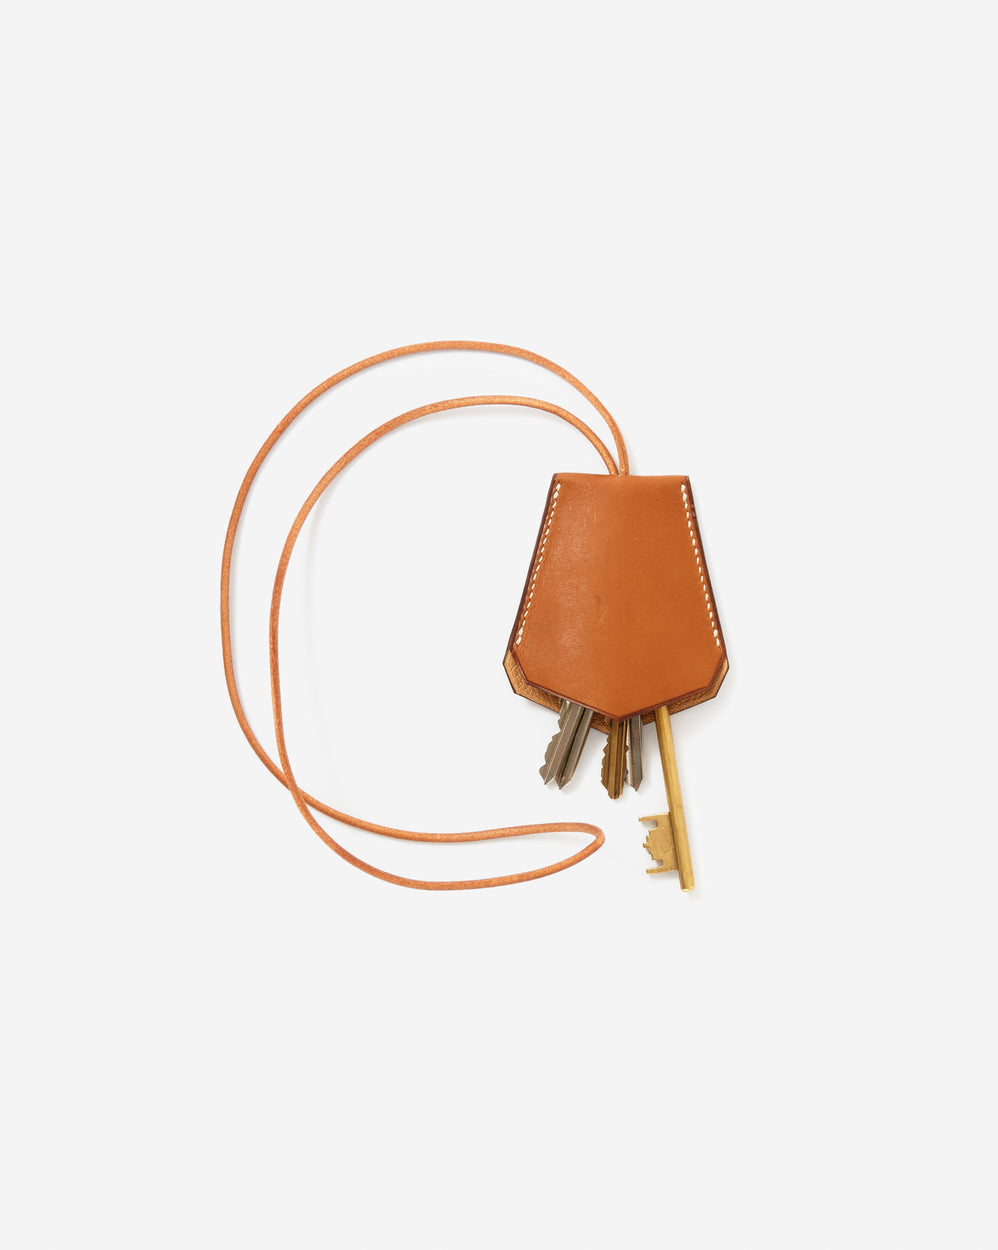 Hand-crafted Leather Key Ring Necklace